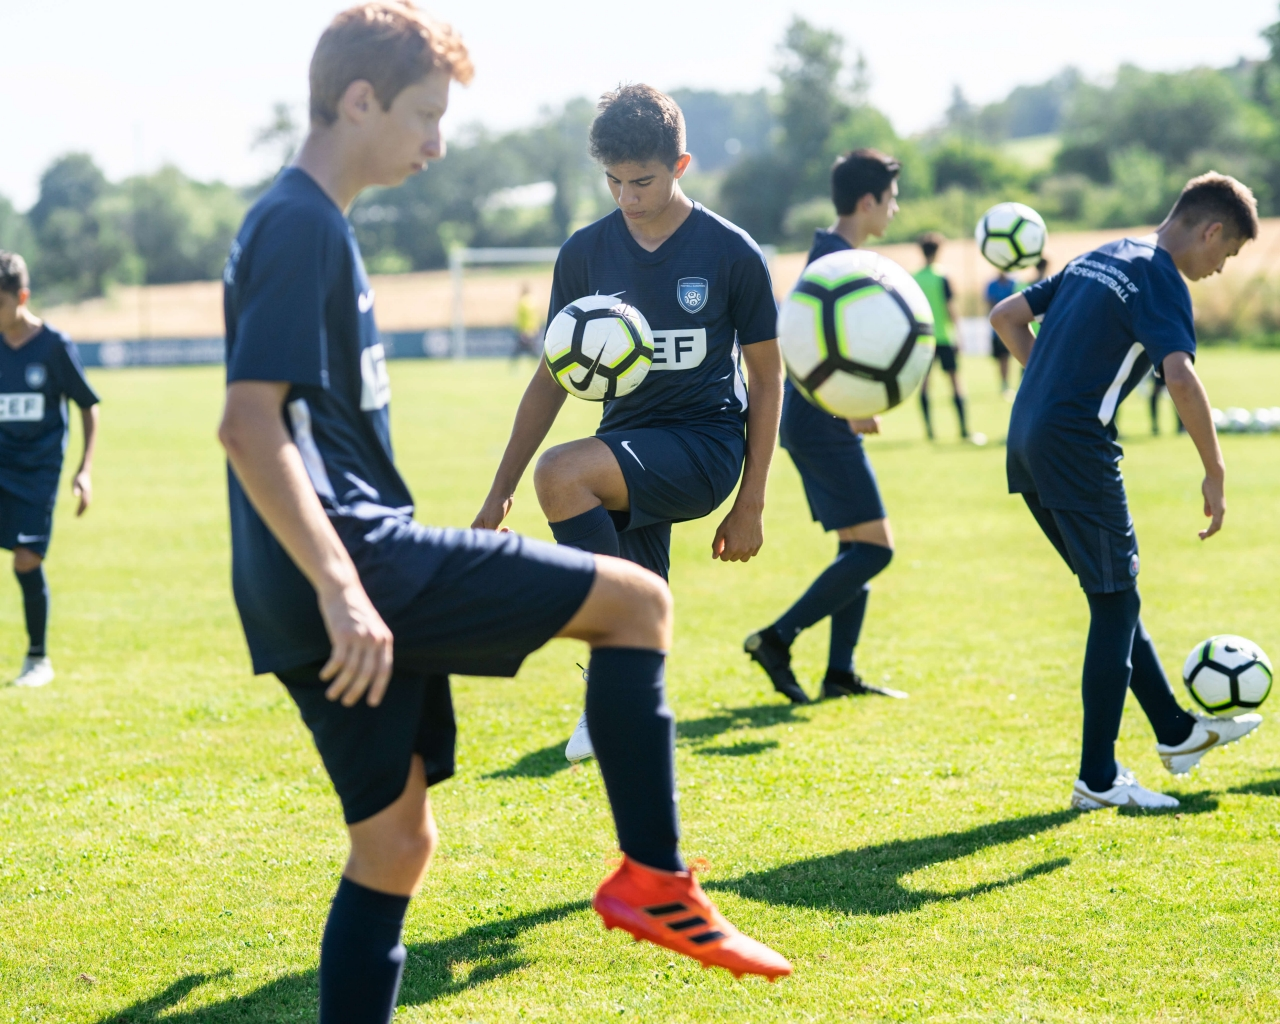 High Performance Soccer Camp in France 2019